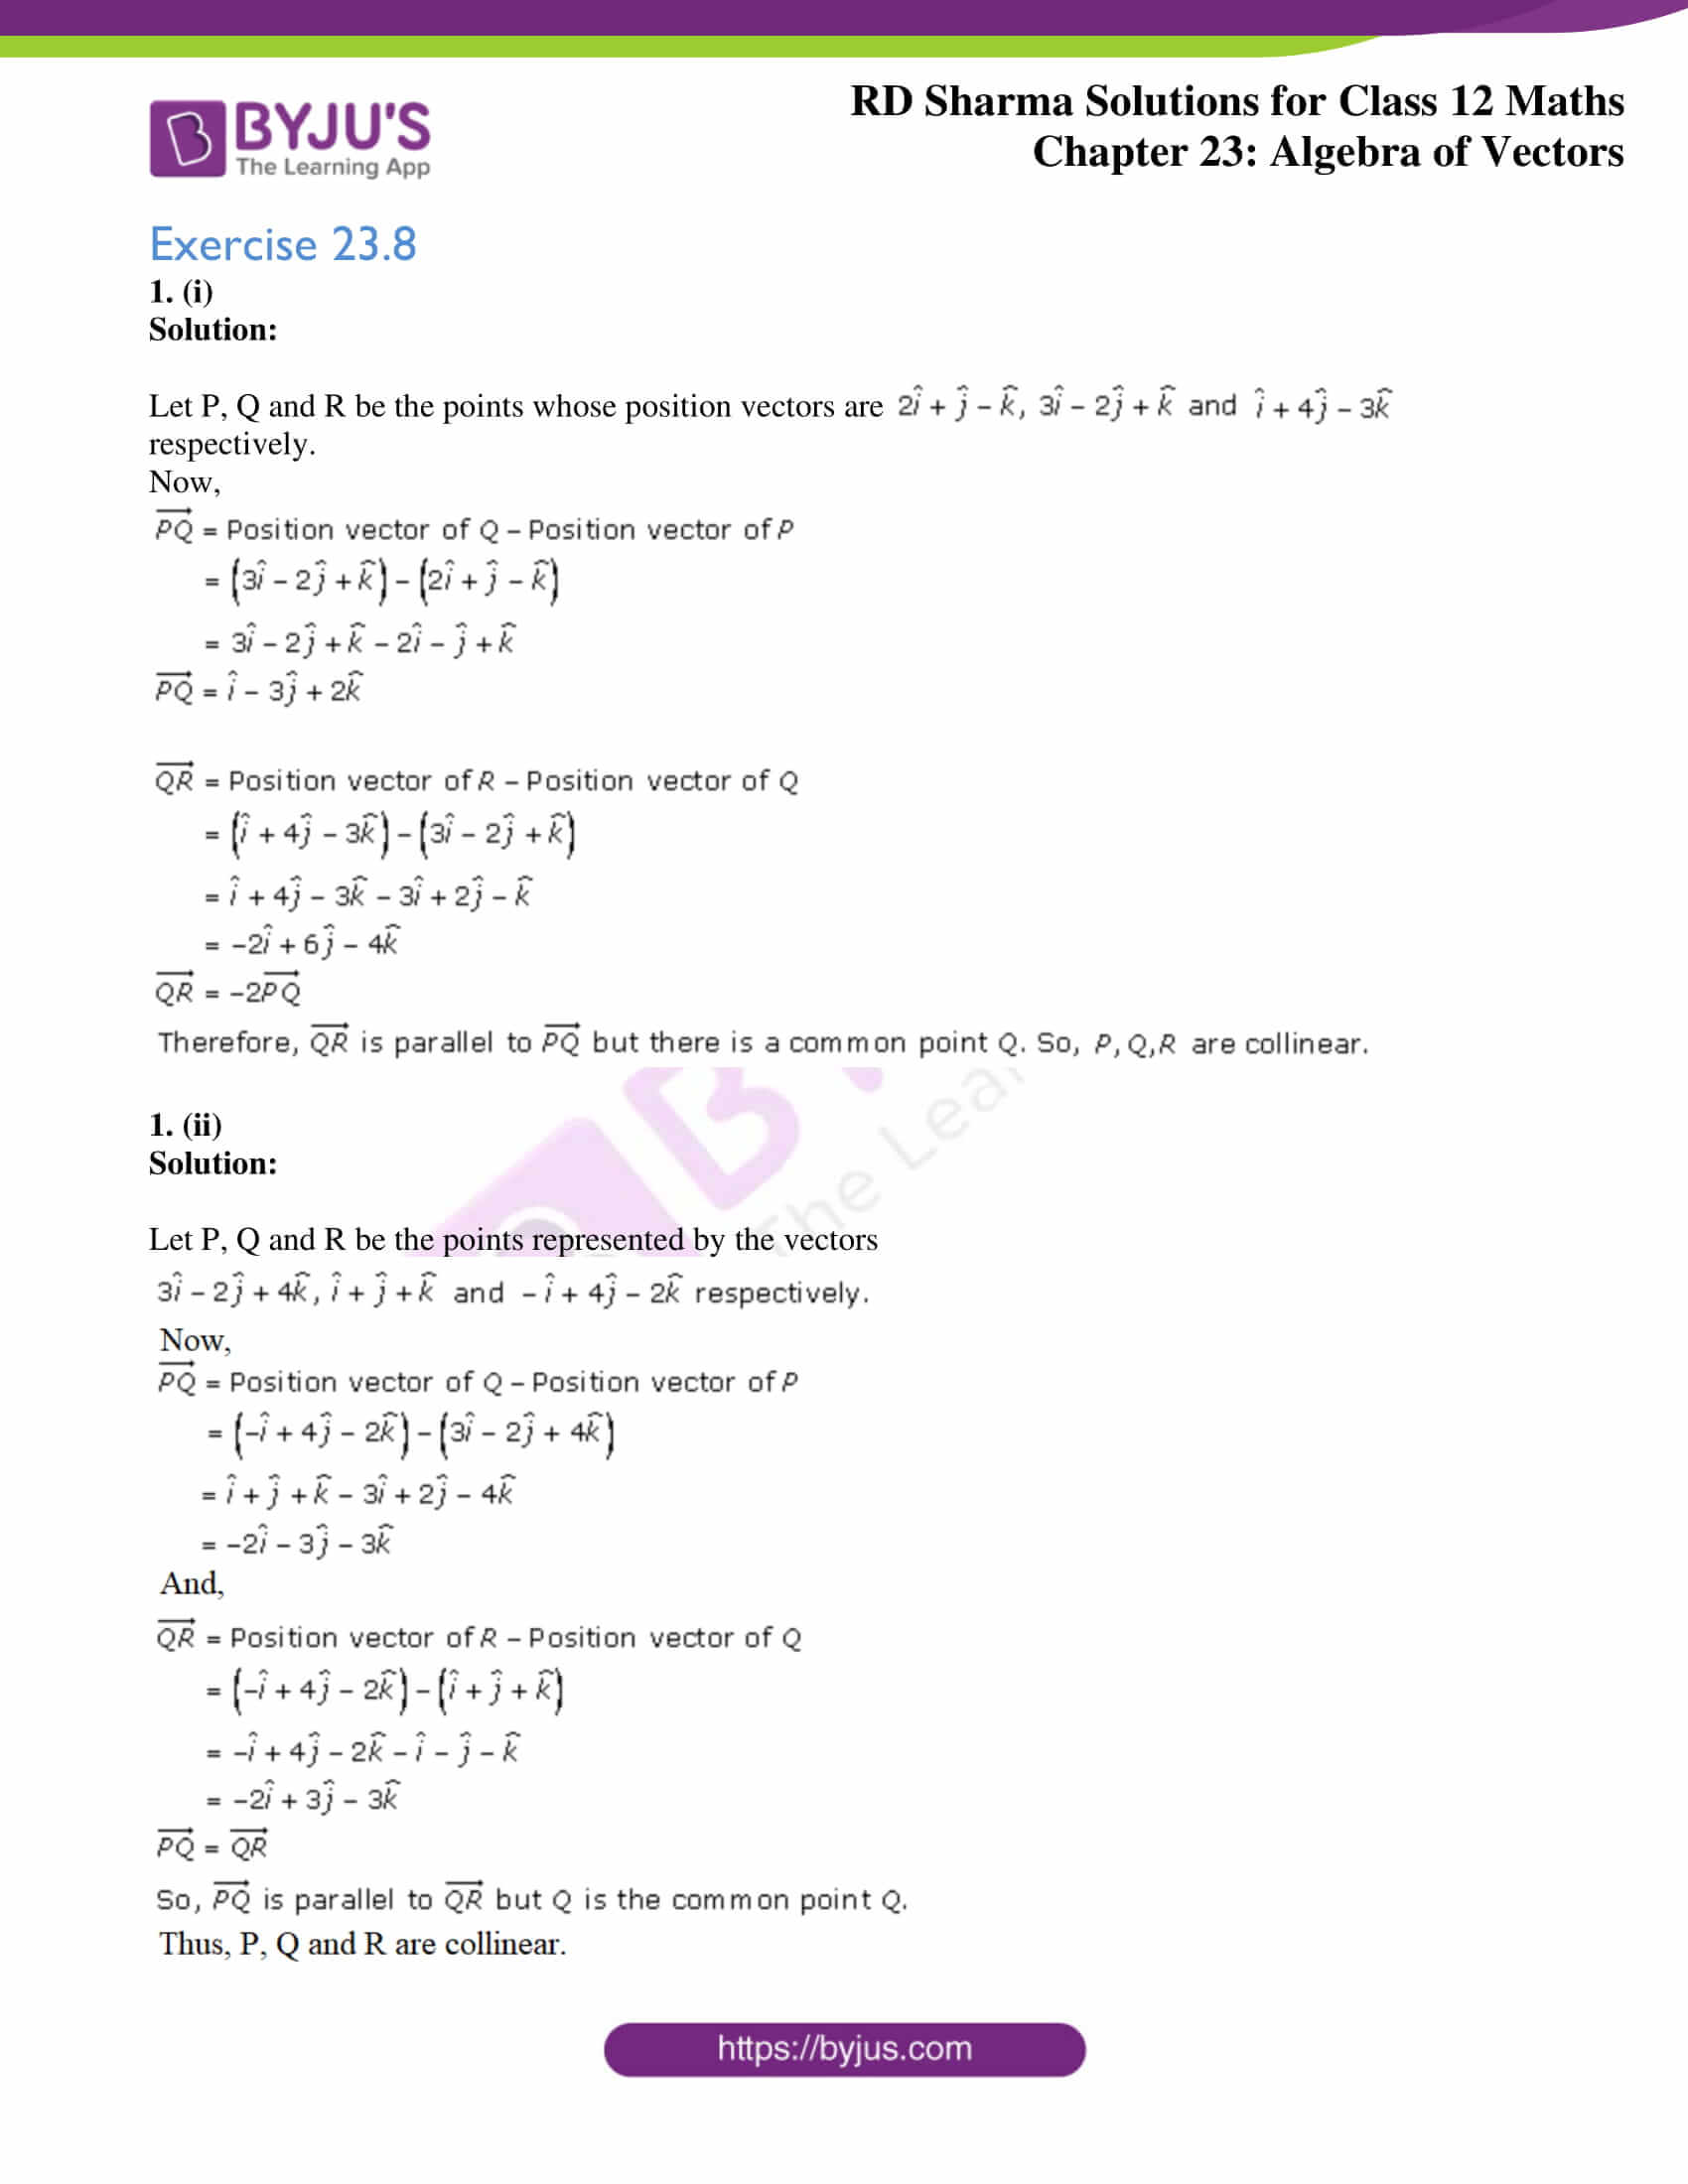 rd sharma class 12 solution for maths chapter 23 ex 8 1